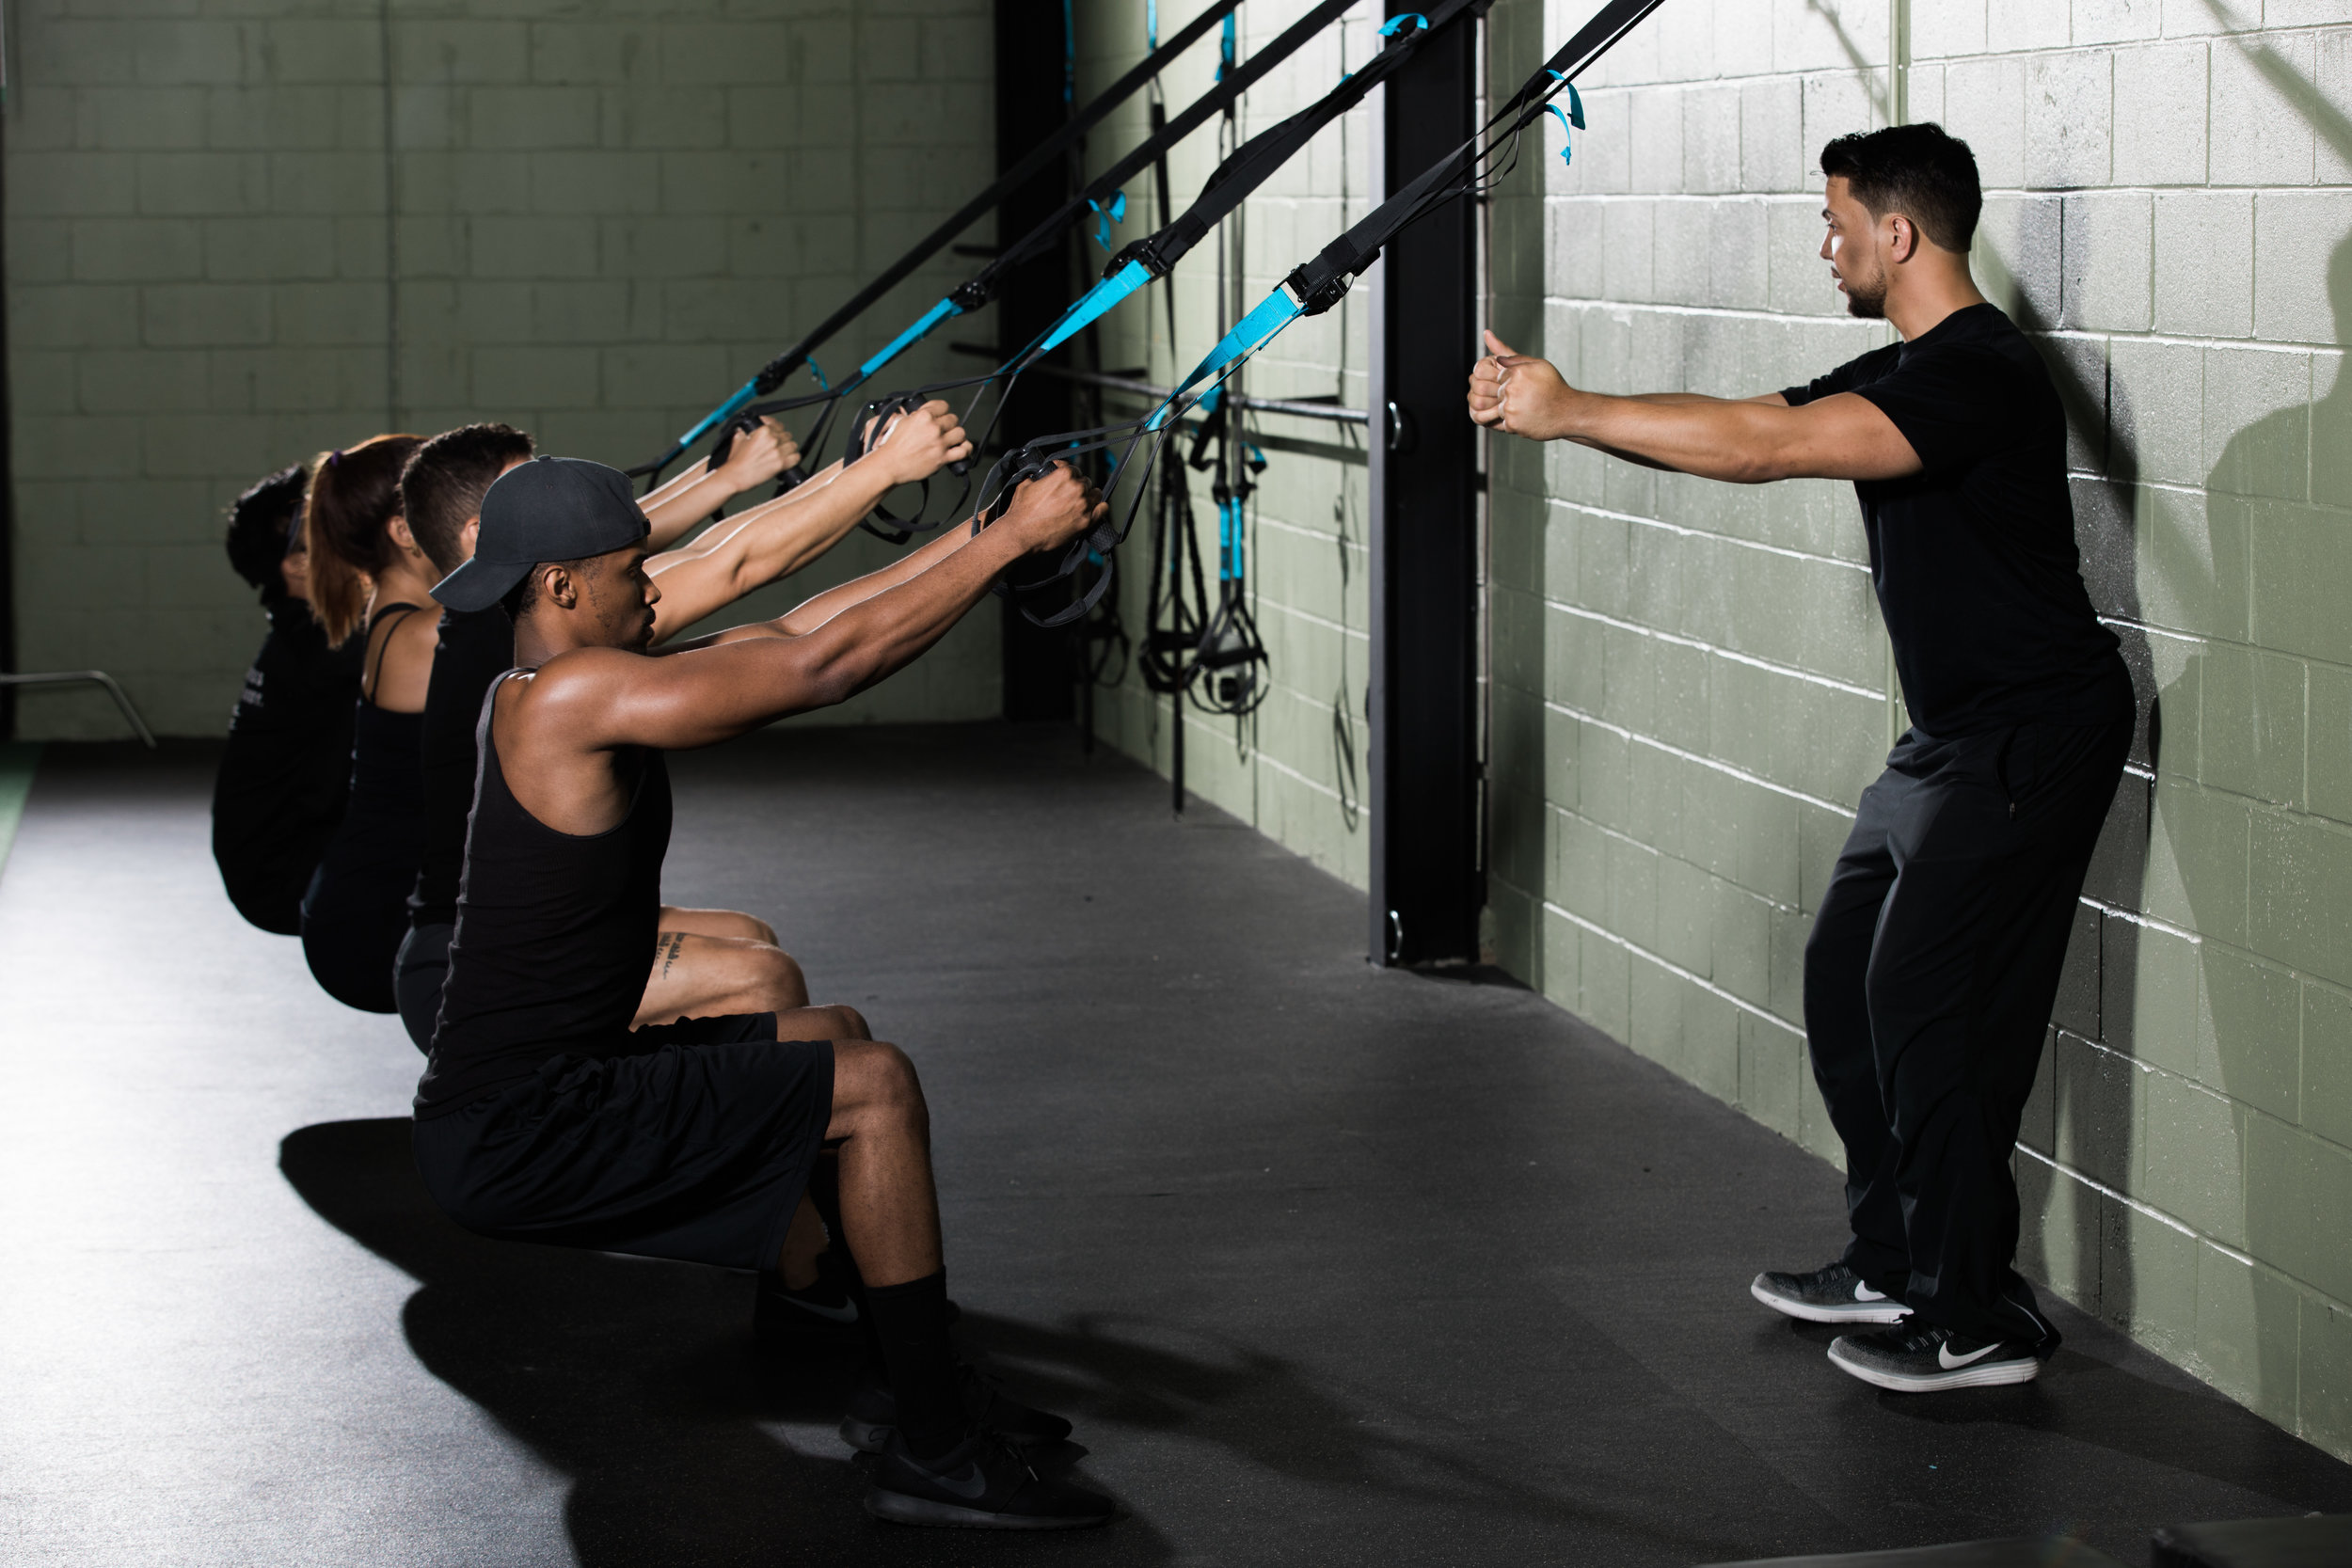 PRIVATE GROUP TRAINING - 3 MONTH PROGRAM   3 Month Contractual Commitment  Features: 2 Classes per Week, Access to App Reservation, Fitmetrix Heart Rate Tracking, 1 Complimentary Personal Training Session (30 Minutes), 1 Complimentary Nutrition Coaching Session (30 Minutes)